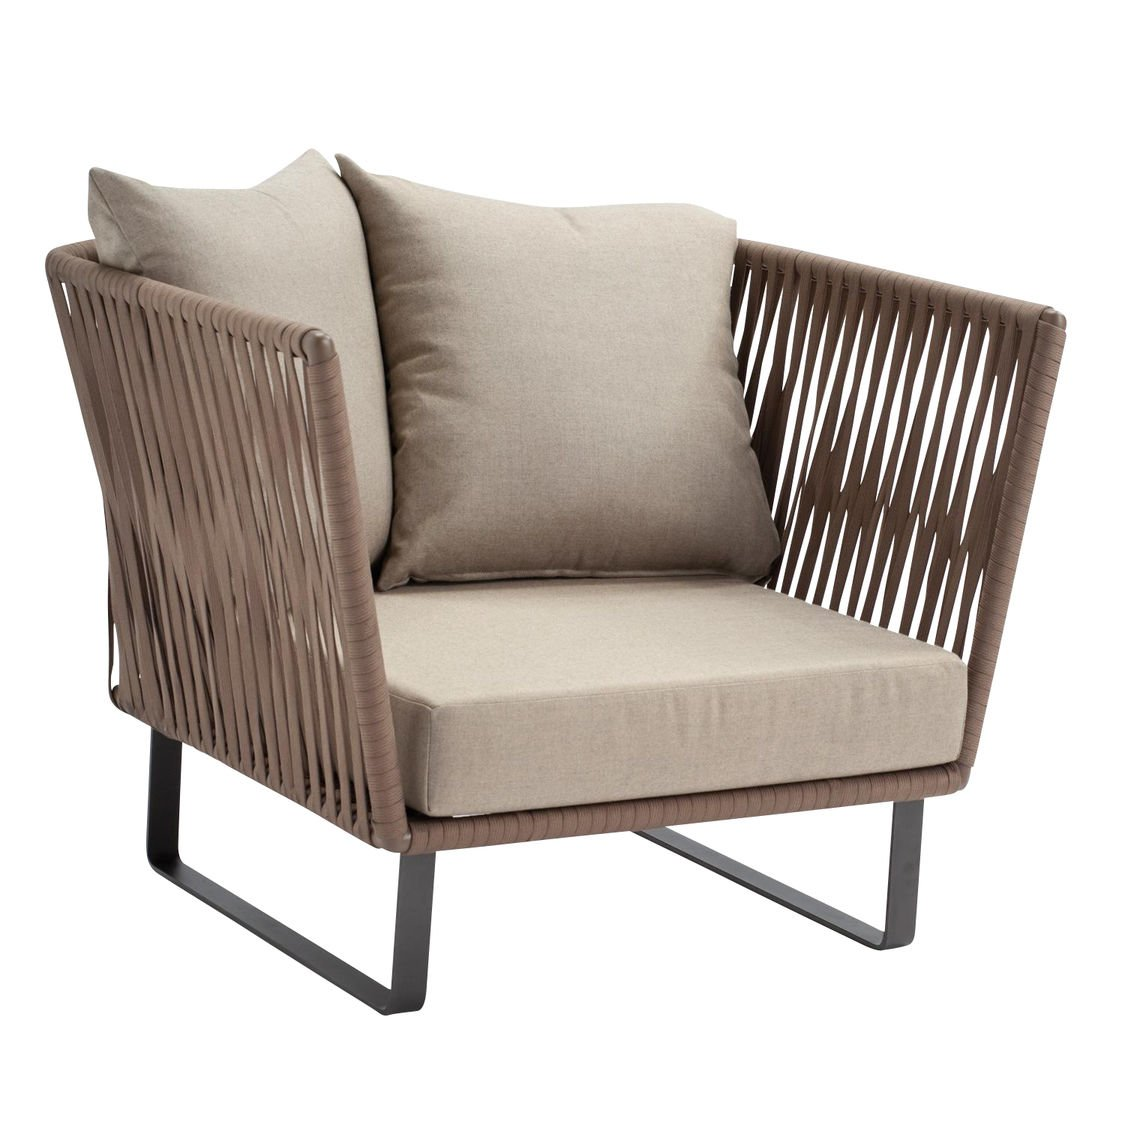 stores collections chairs coastal chair club hauser outdoor